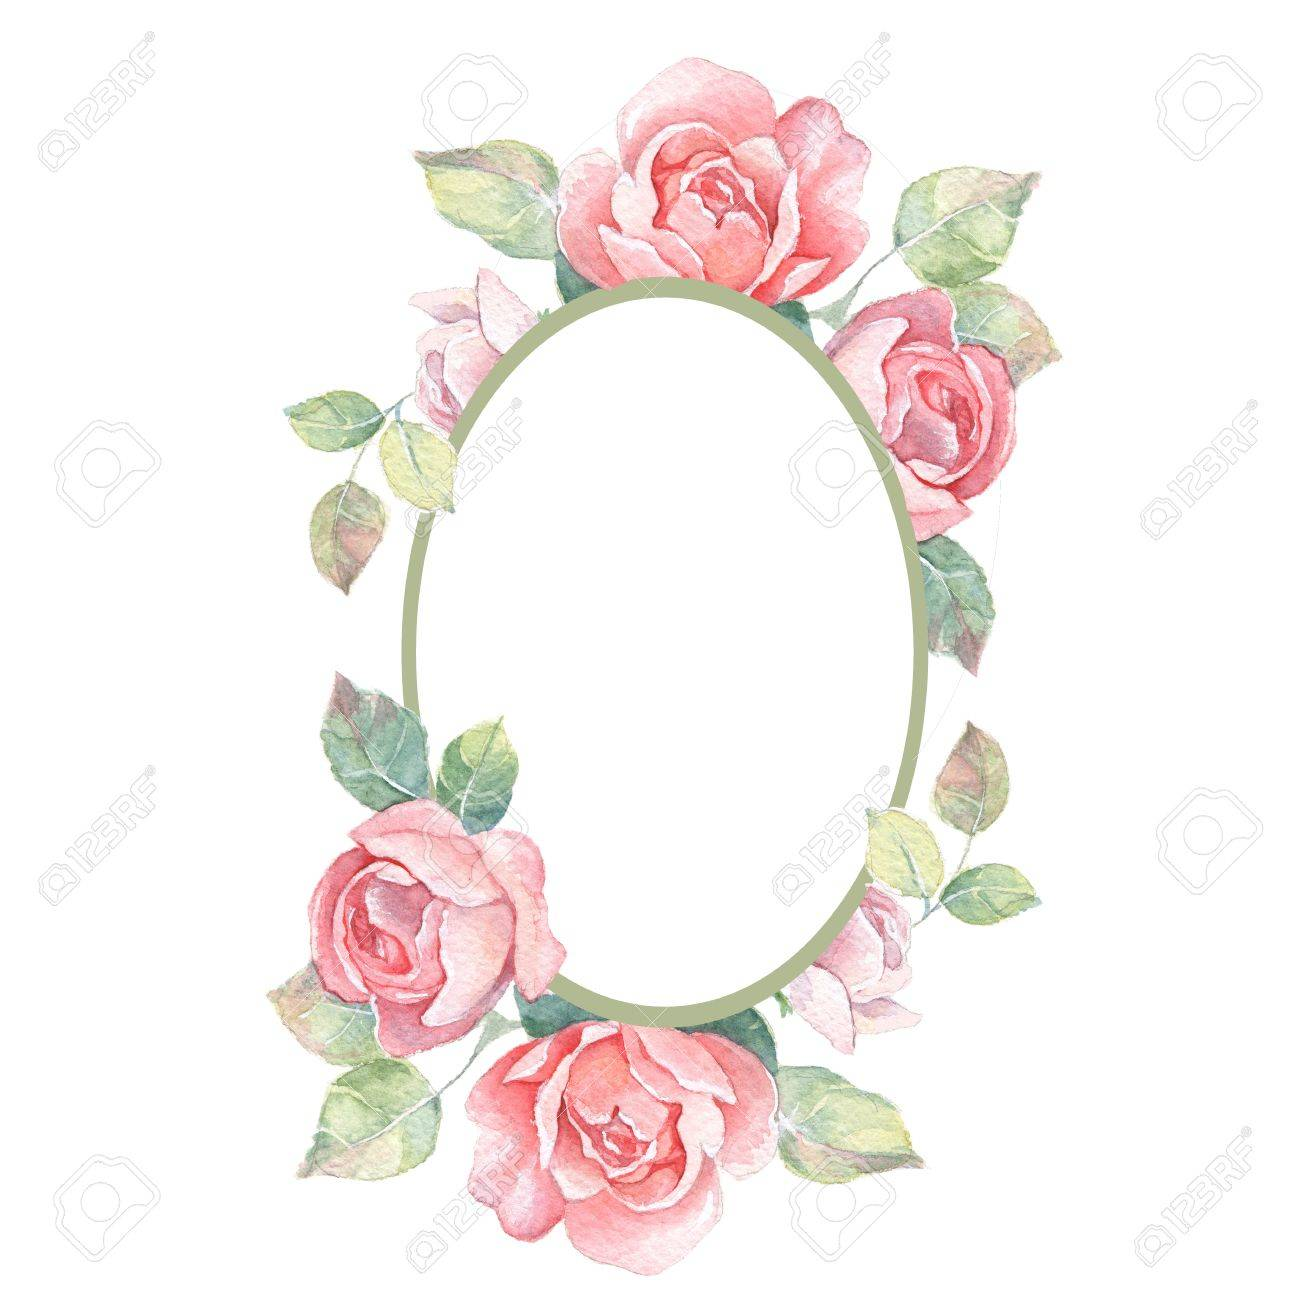 Beautiful floral frame. Watercolor illustration 1 - 60598071